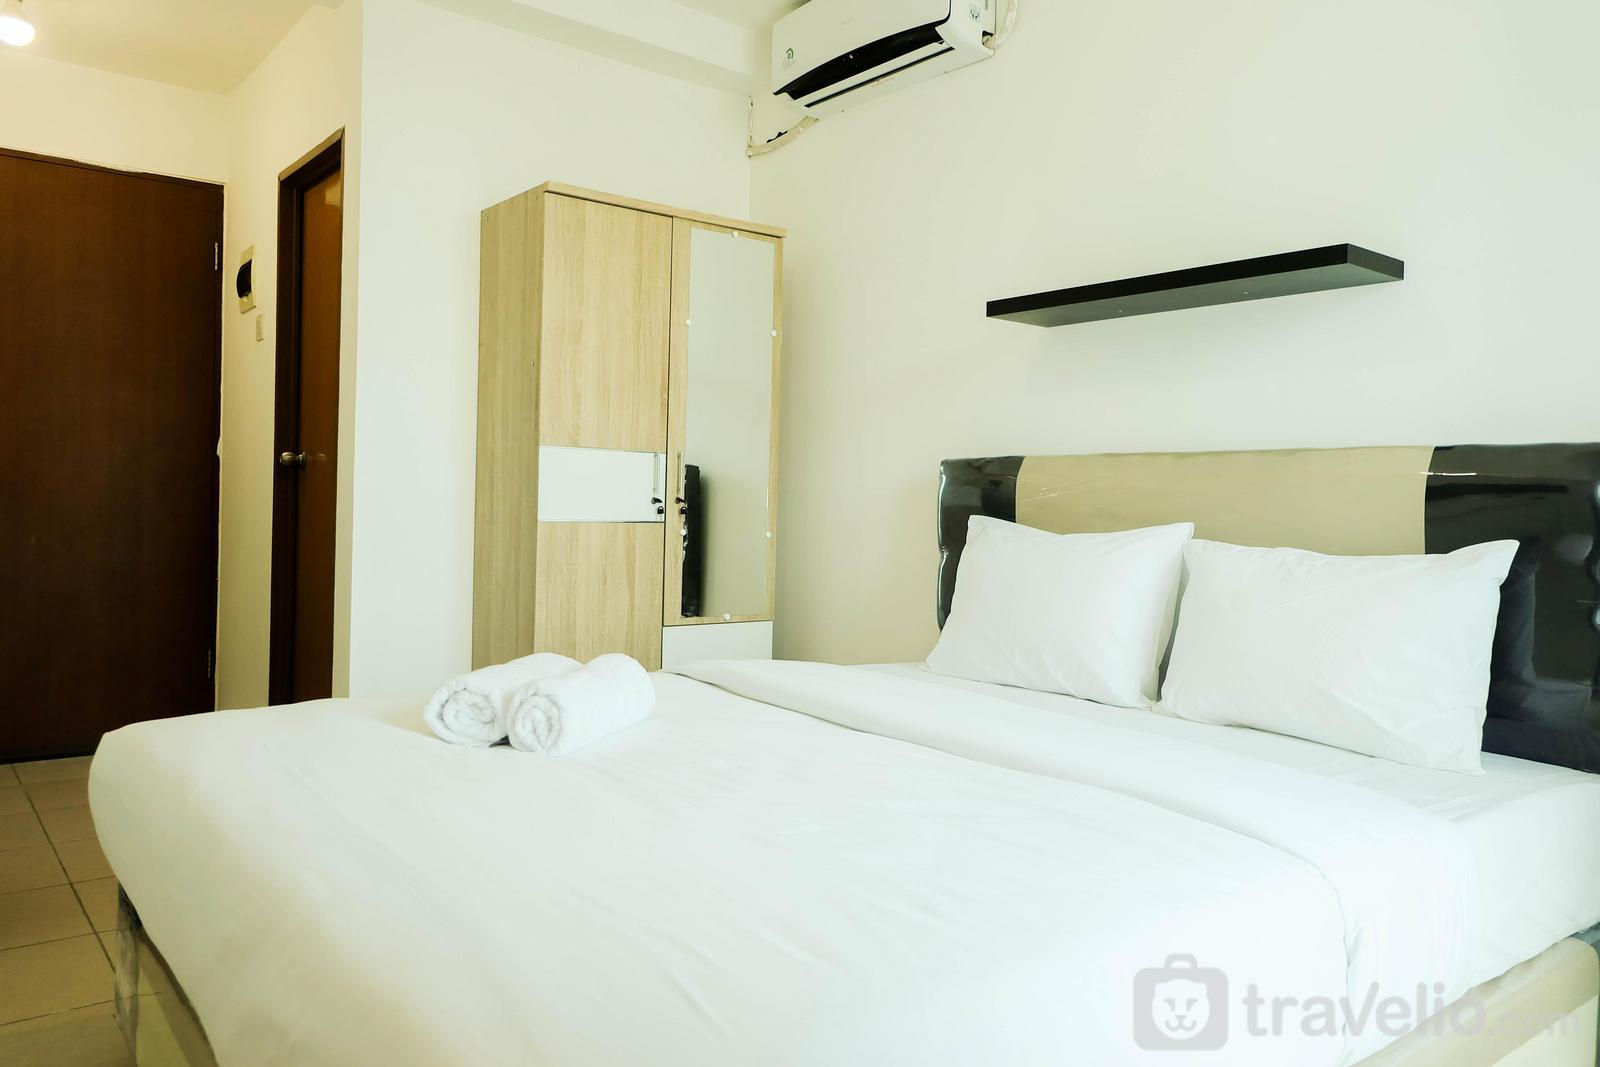 Apartemen Tifolia - Studio near Bella Terra Mall at Tifolia Apartment By Travelio